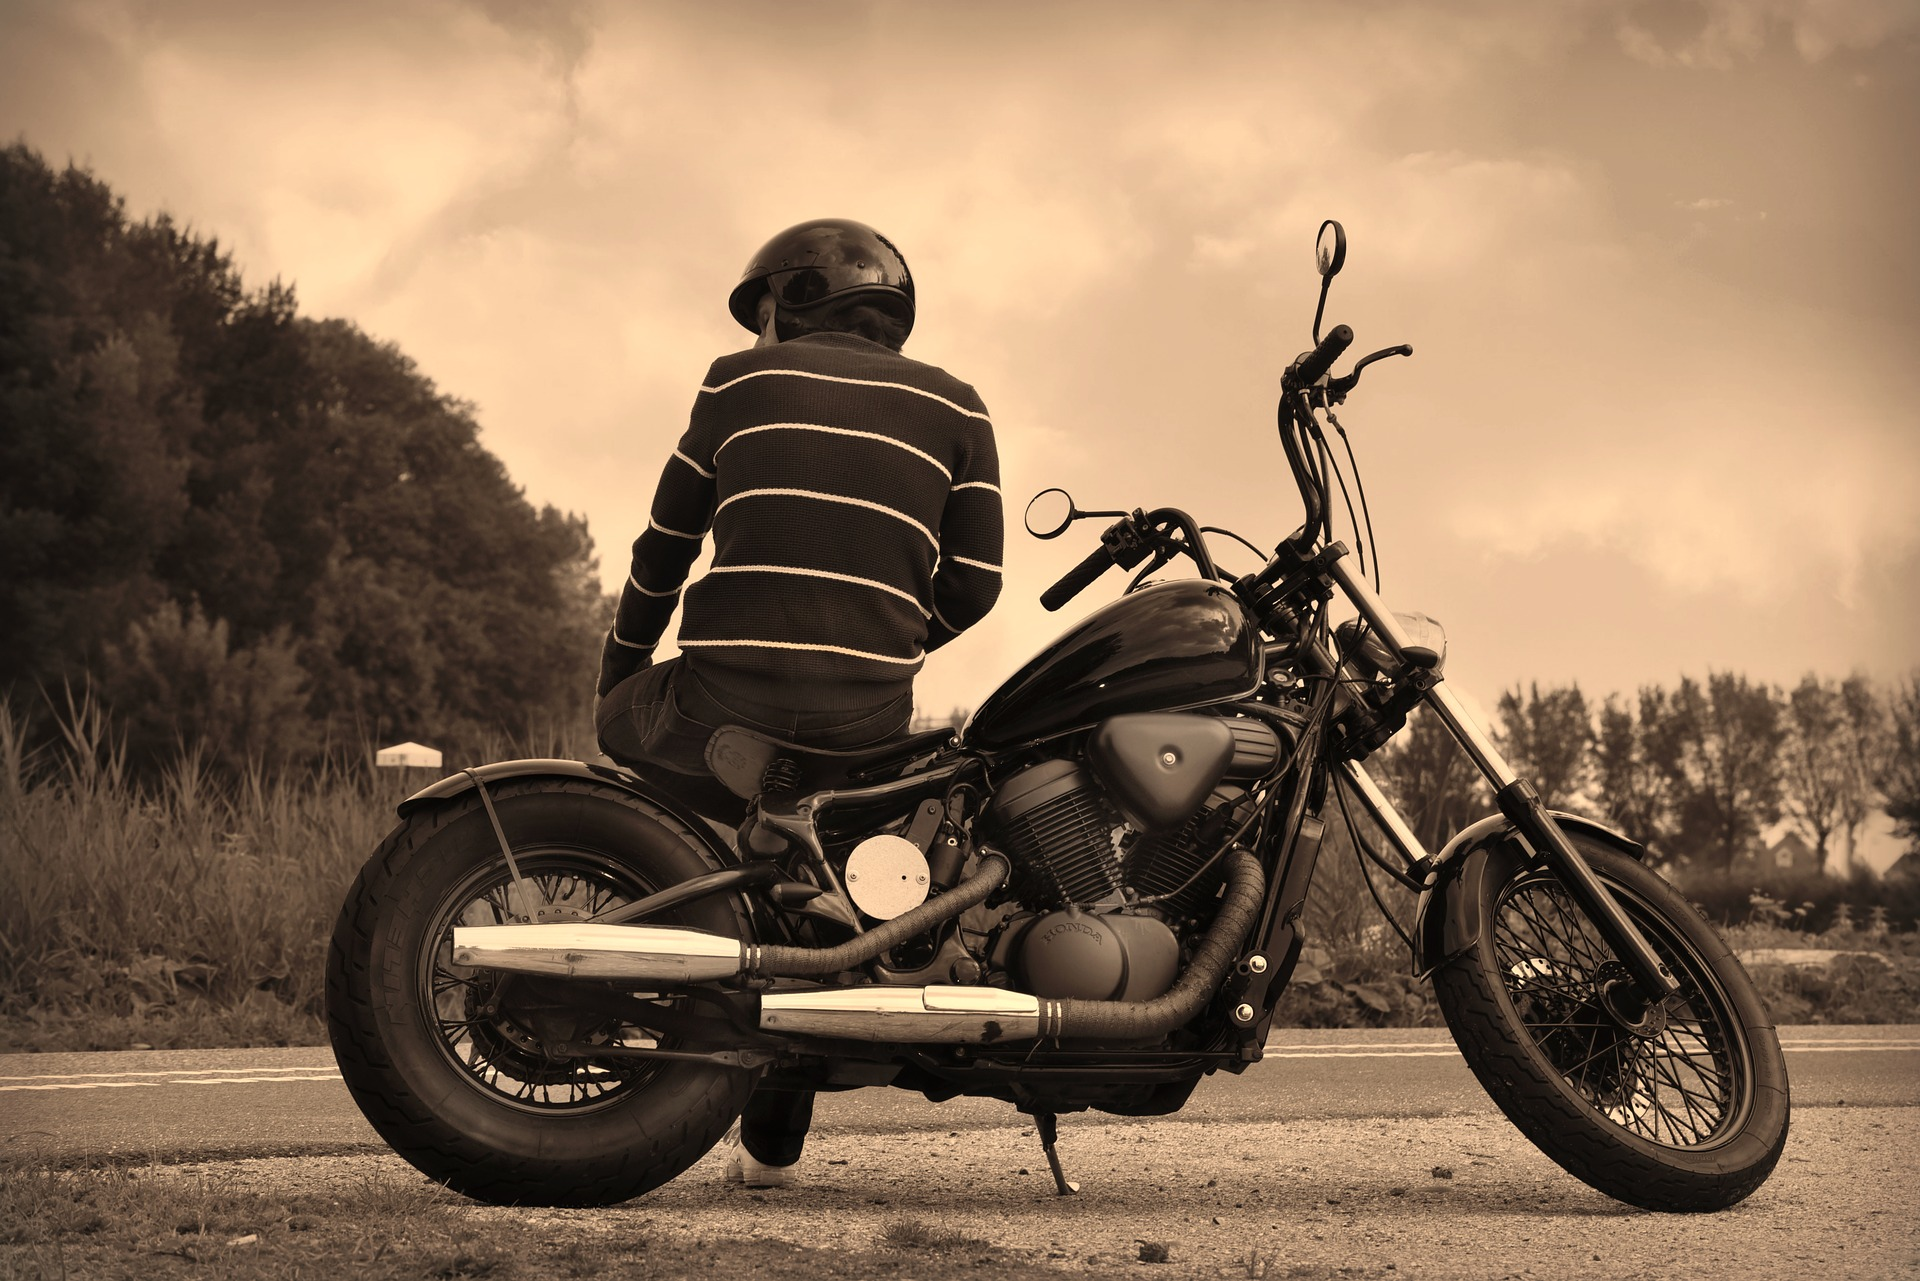 Motorcycle Trip - Ride Worry-Free Across the Country